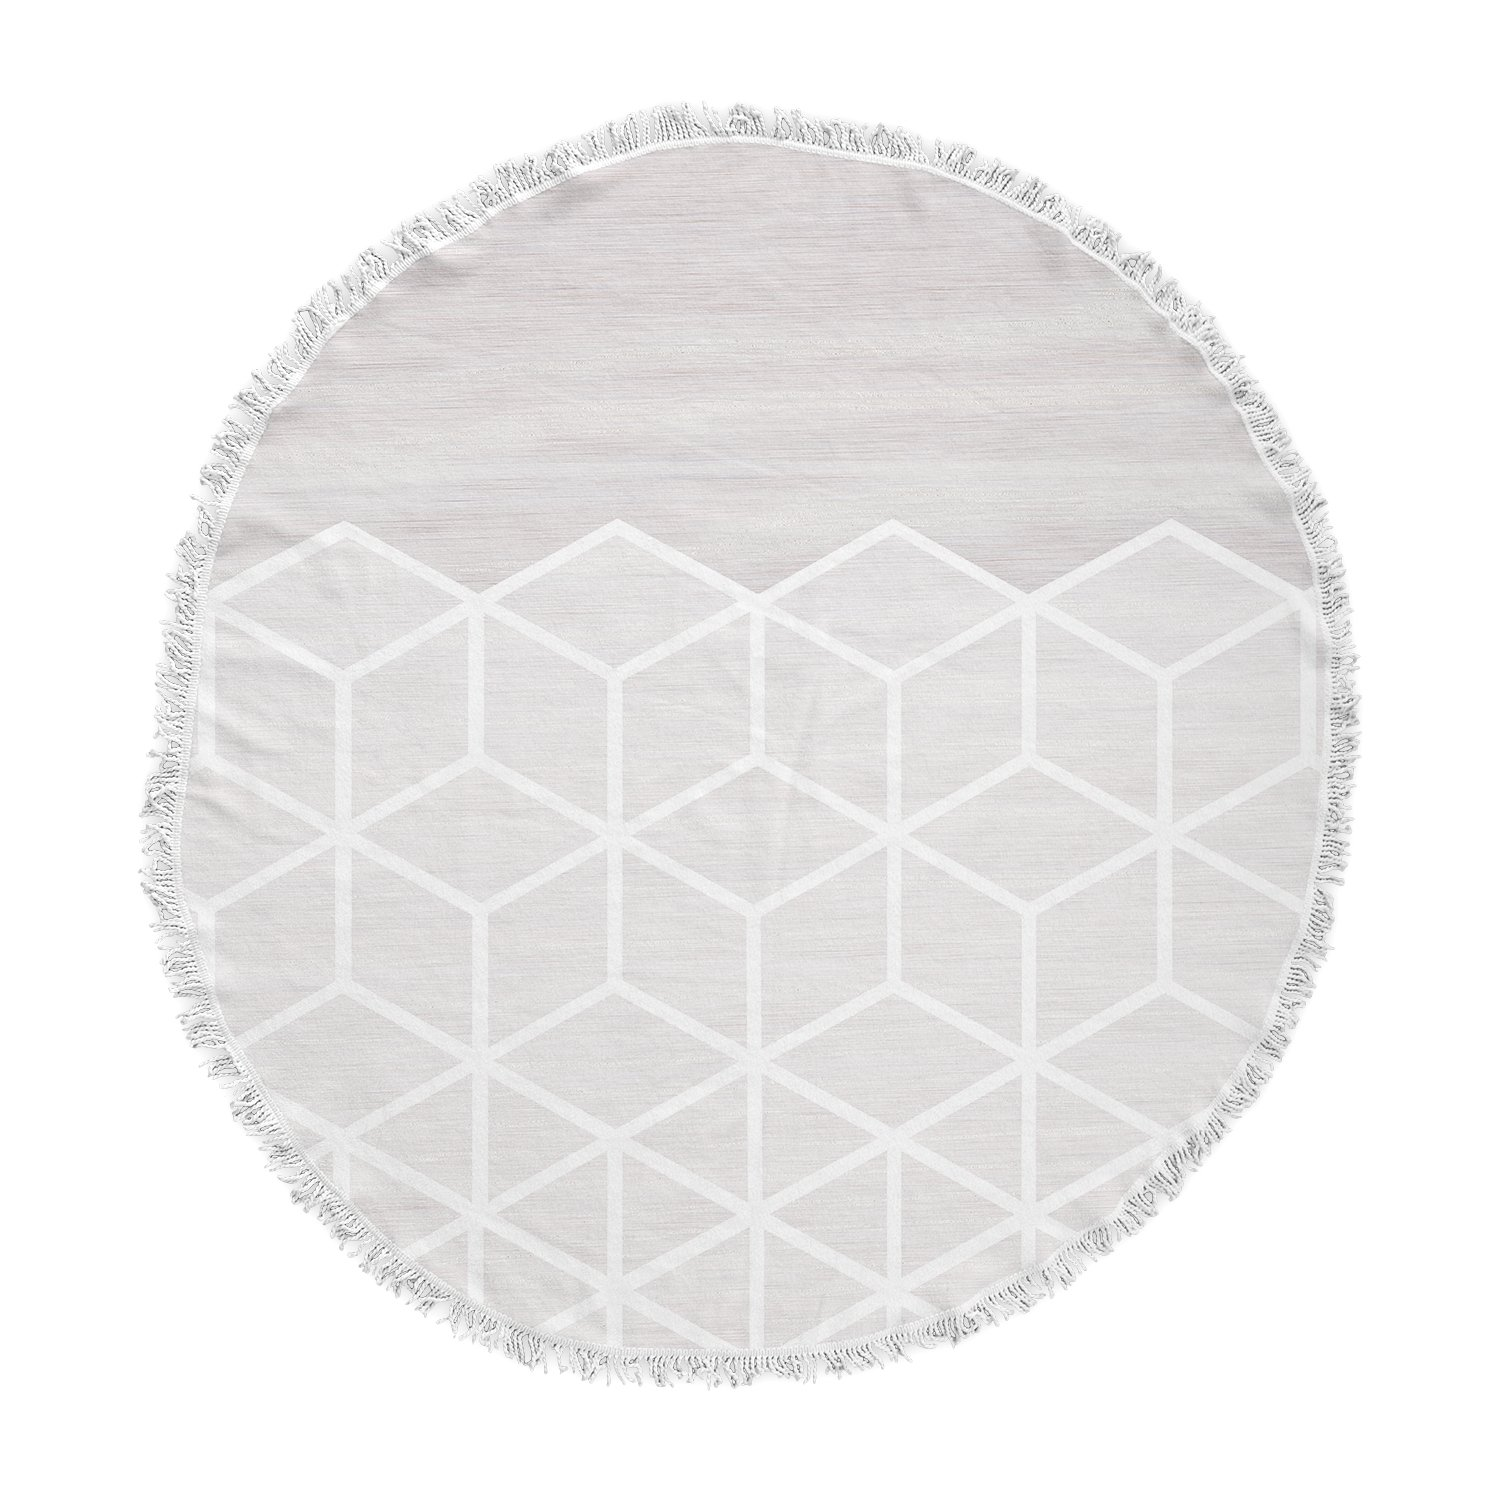 KESS InHouse Draper Geo Woodgrain Gray White Round Beach Towel Blanket